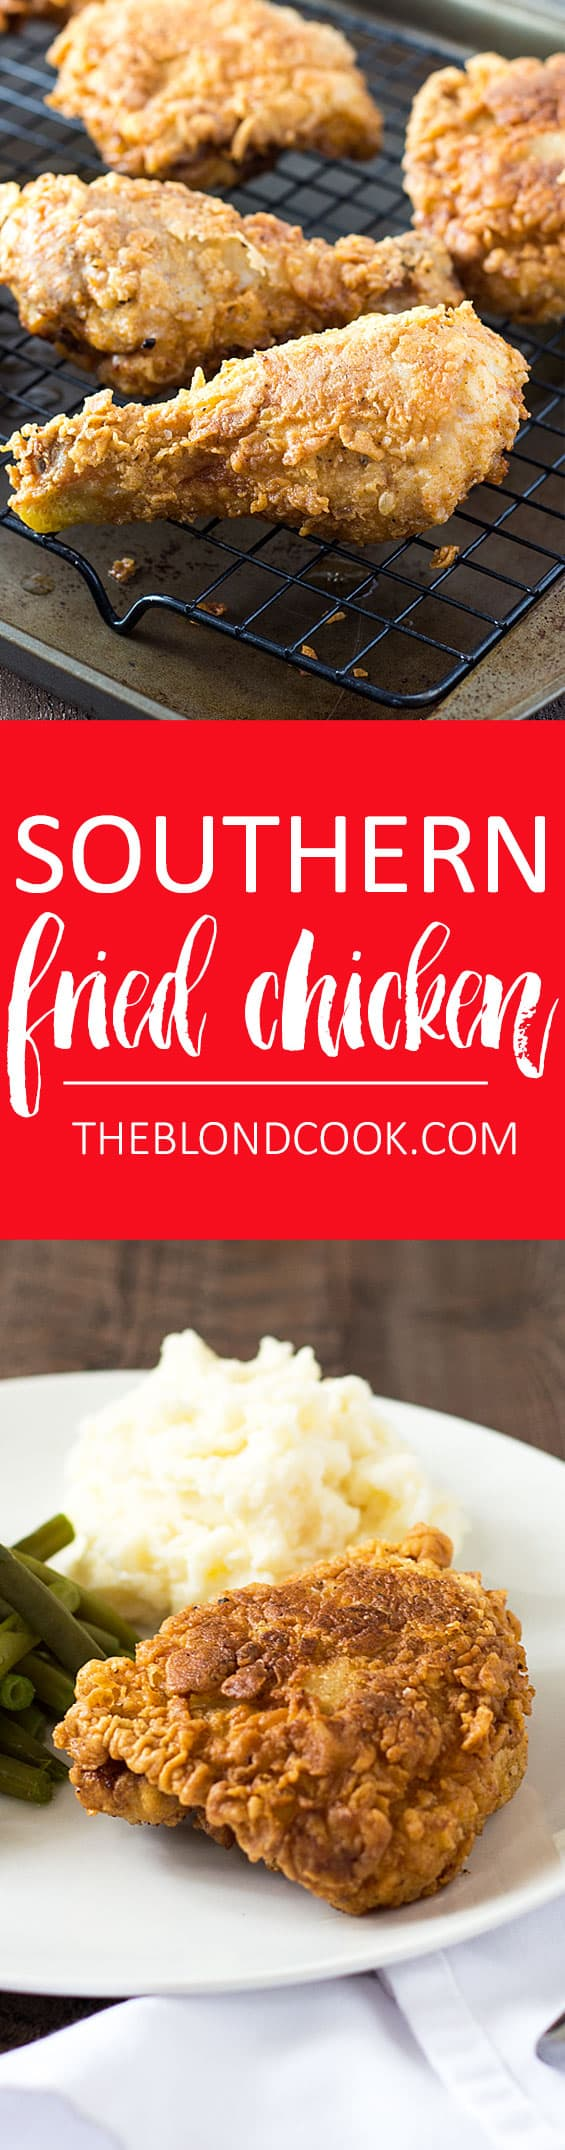 Two images of fried chicken.  Text in center says southern fried chicken.